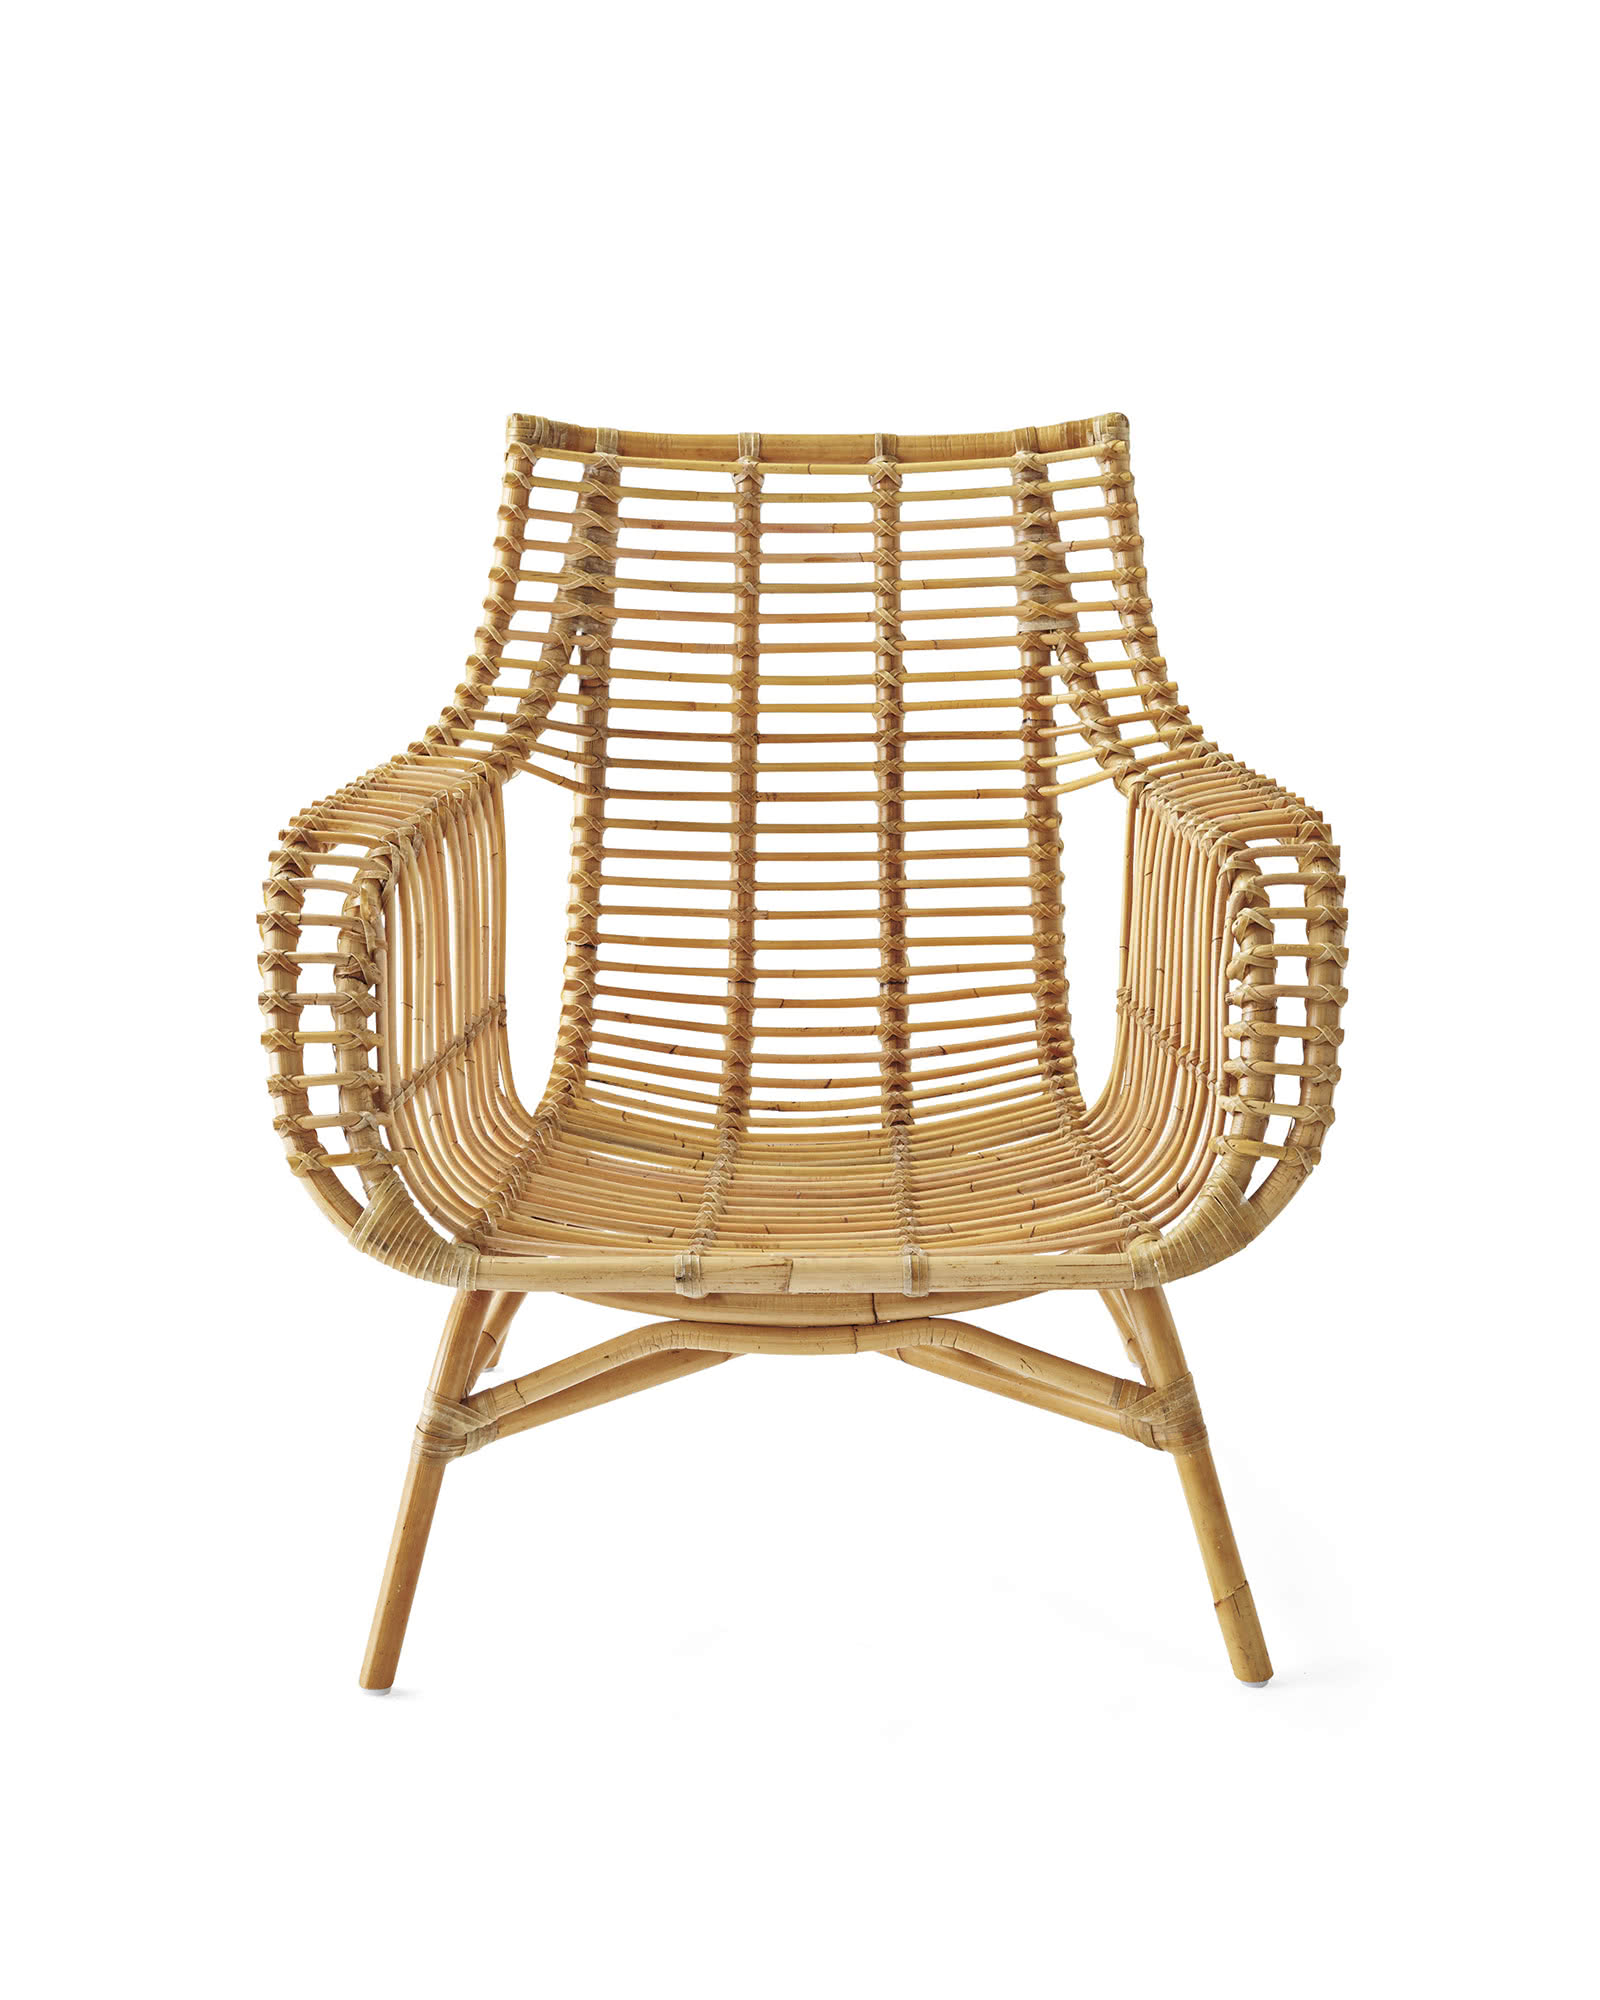 Rattan Chairs Venice Rattan Chair